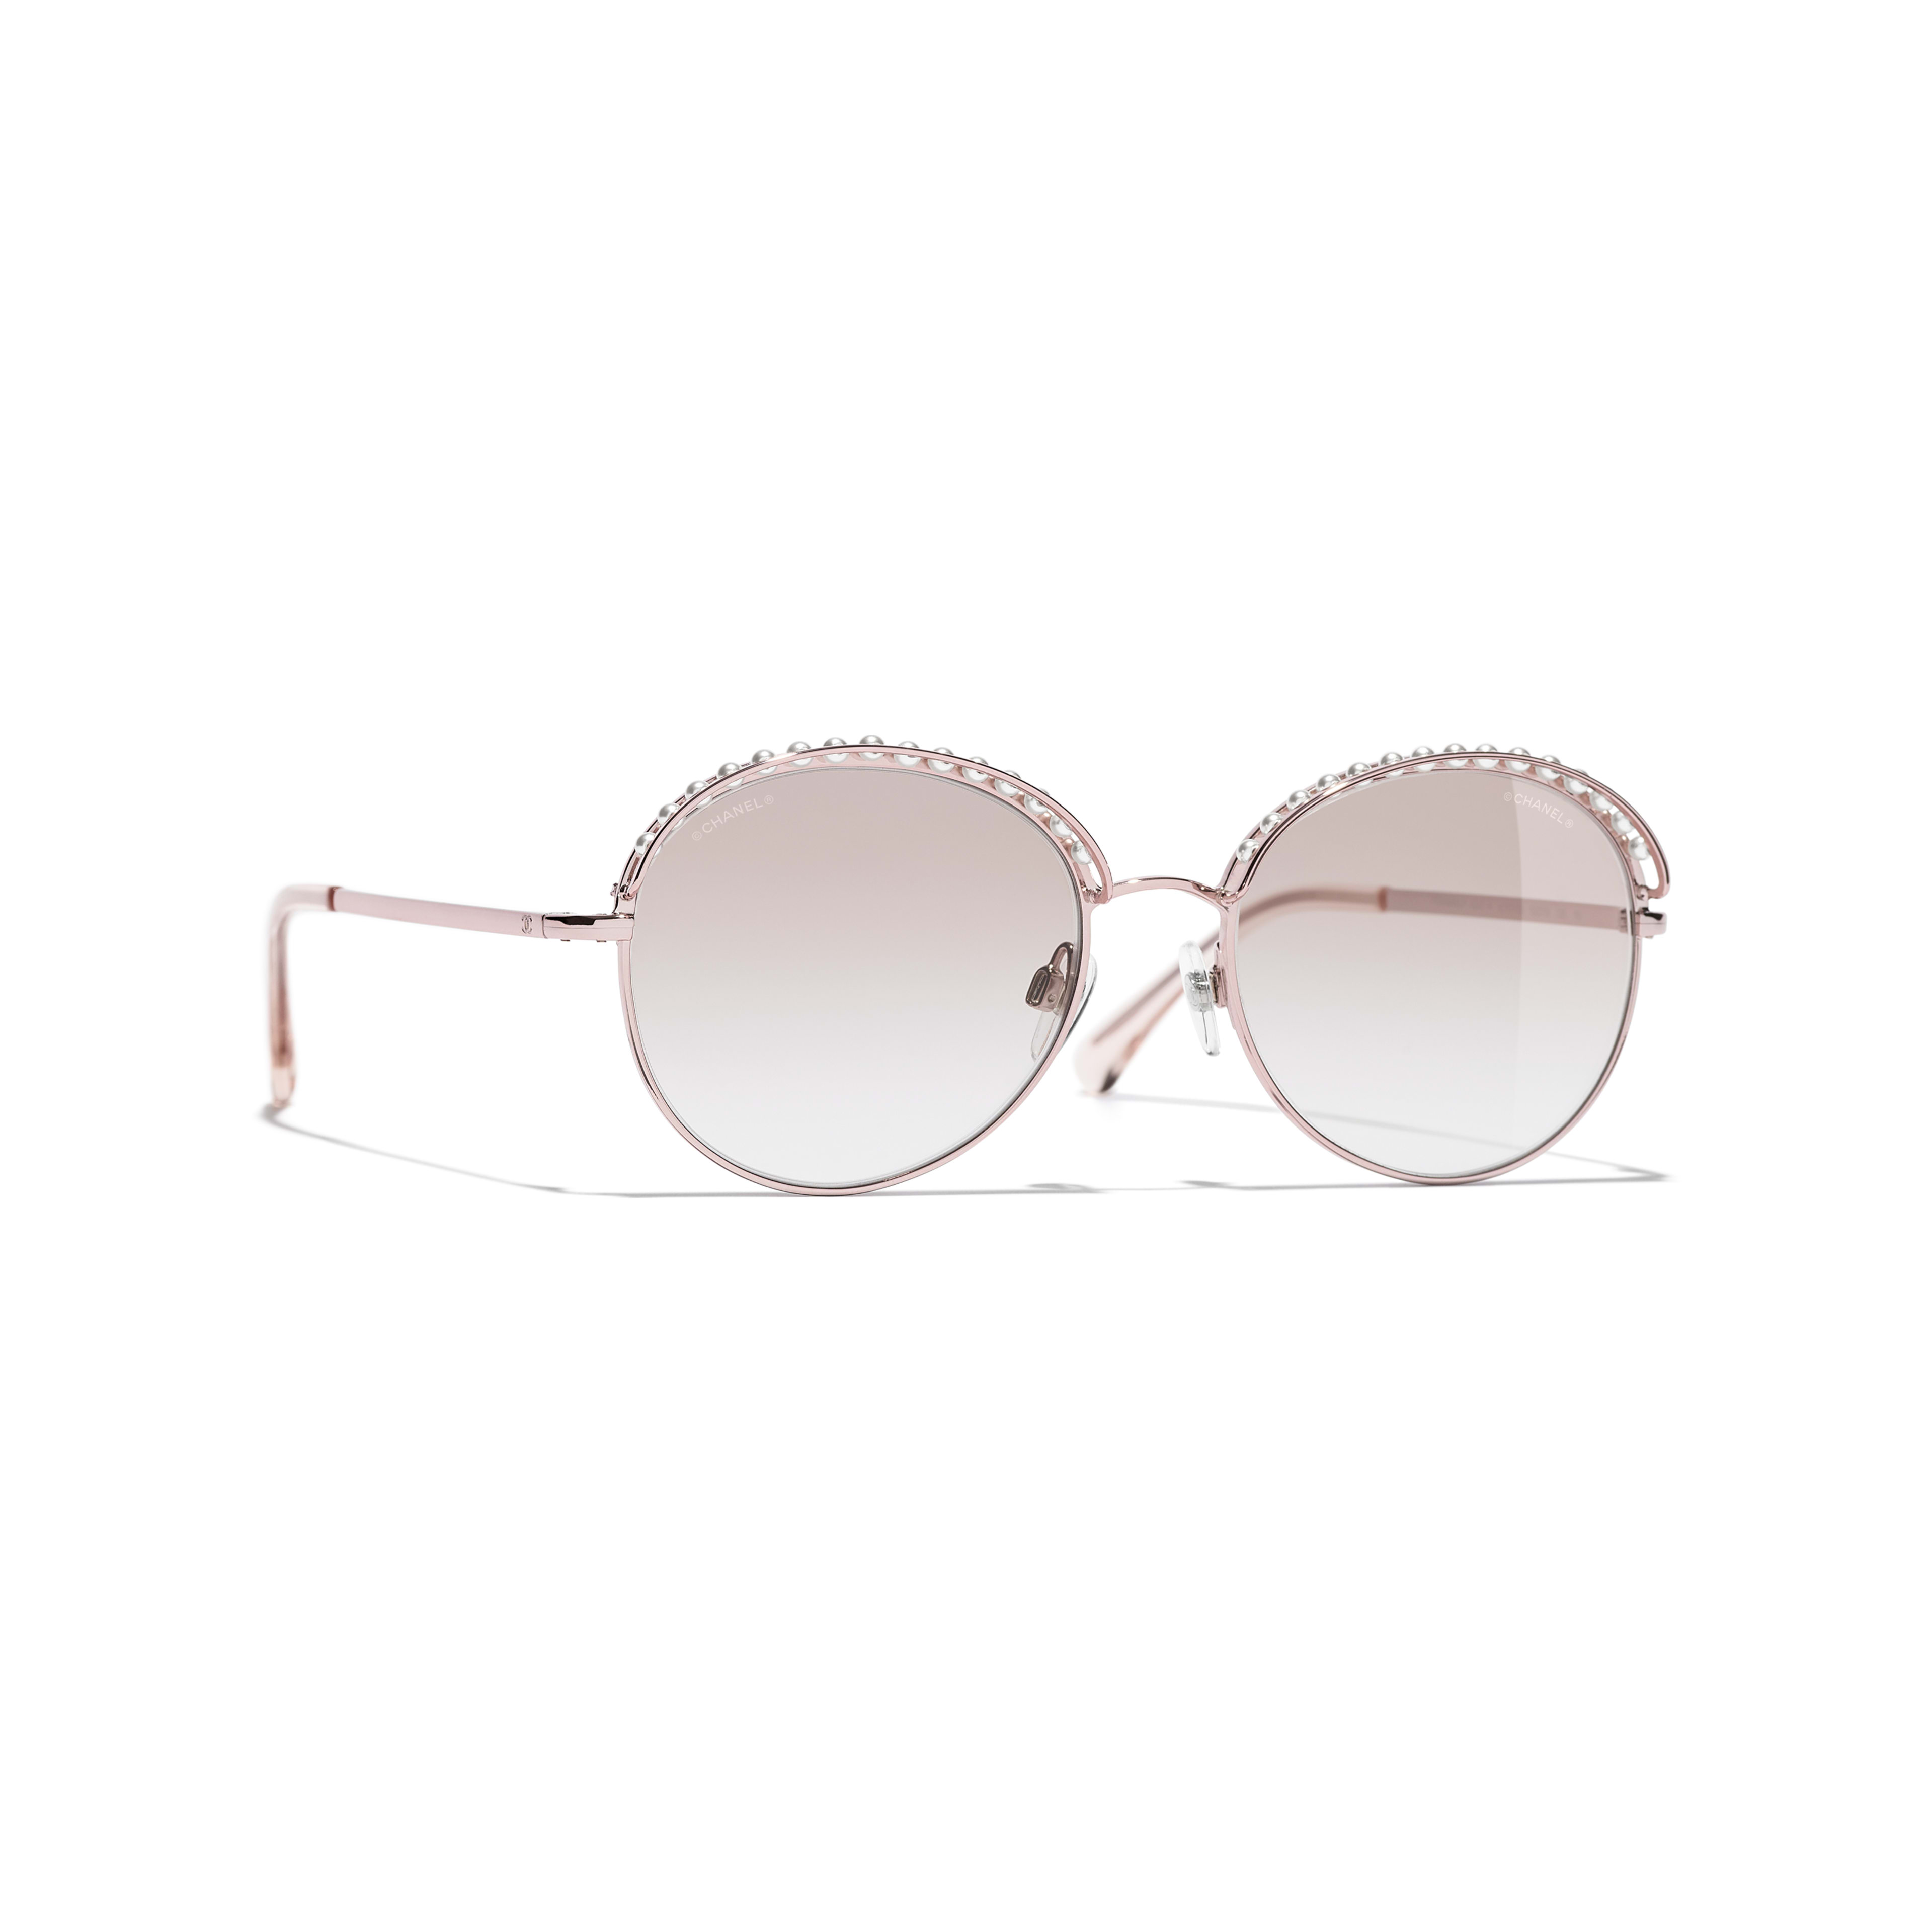 Round Sunglasses - Pinky Gold - Metal & Imitation Pearls - Default view - see full sized version